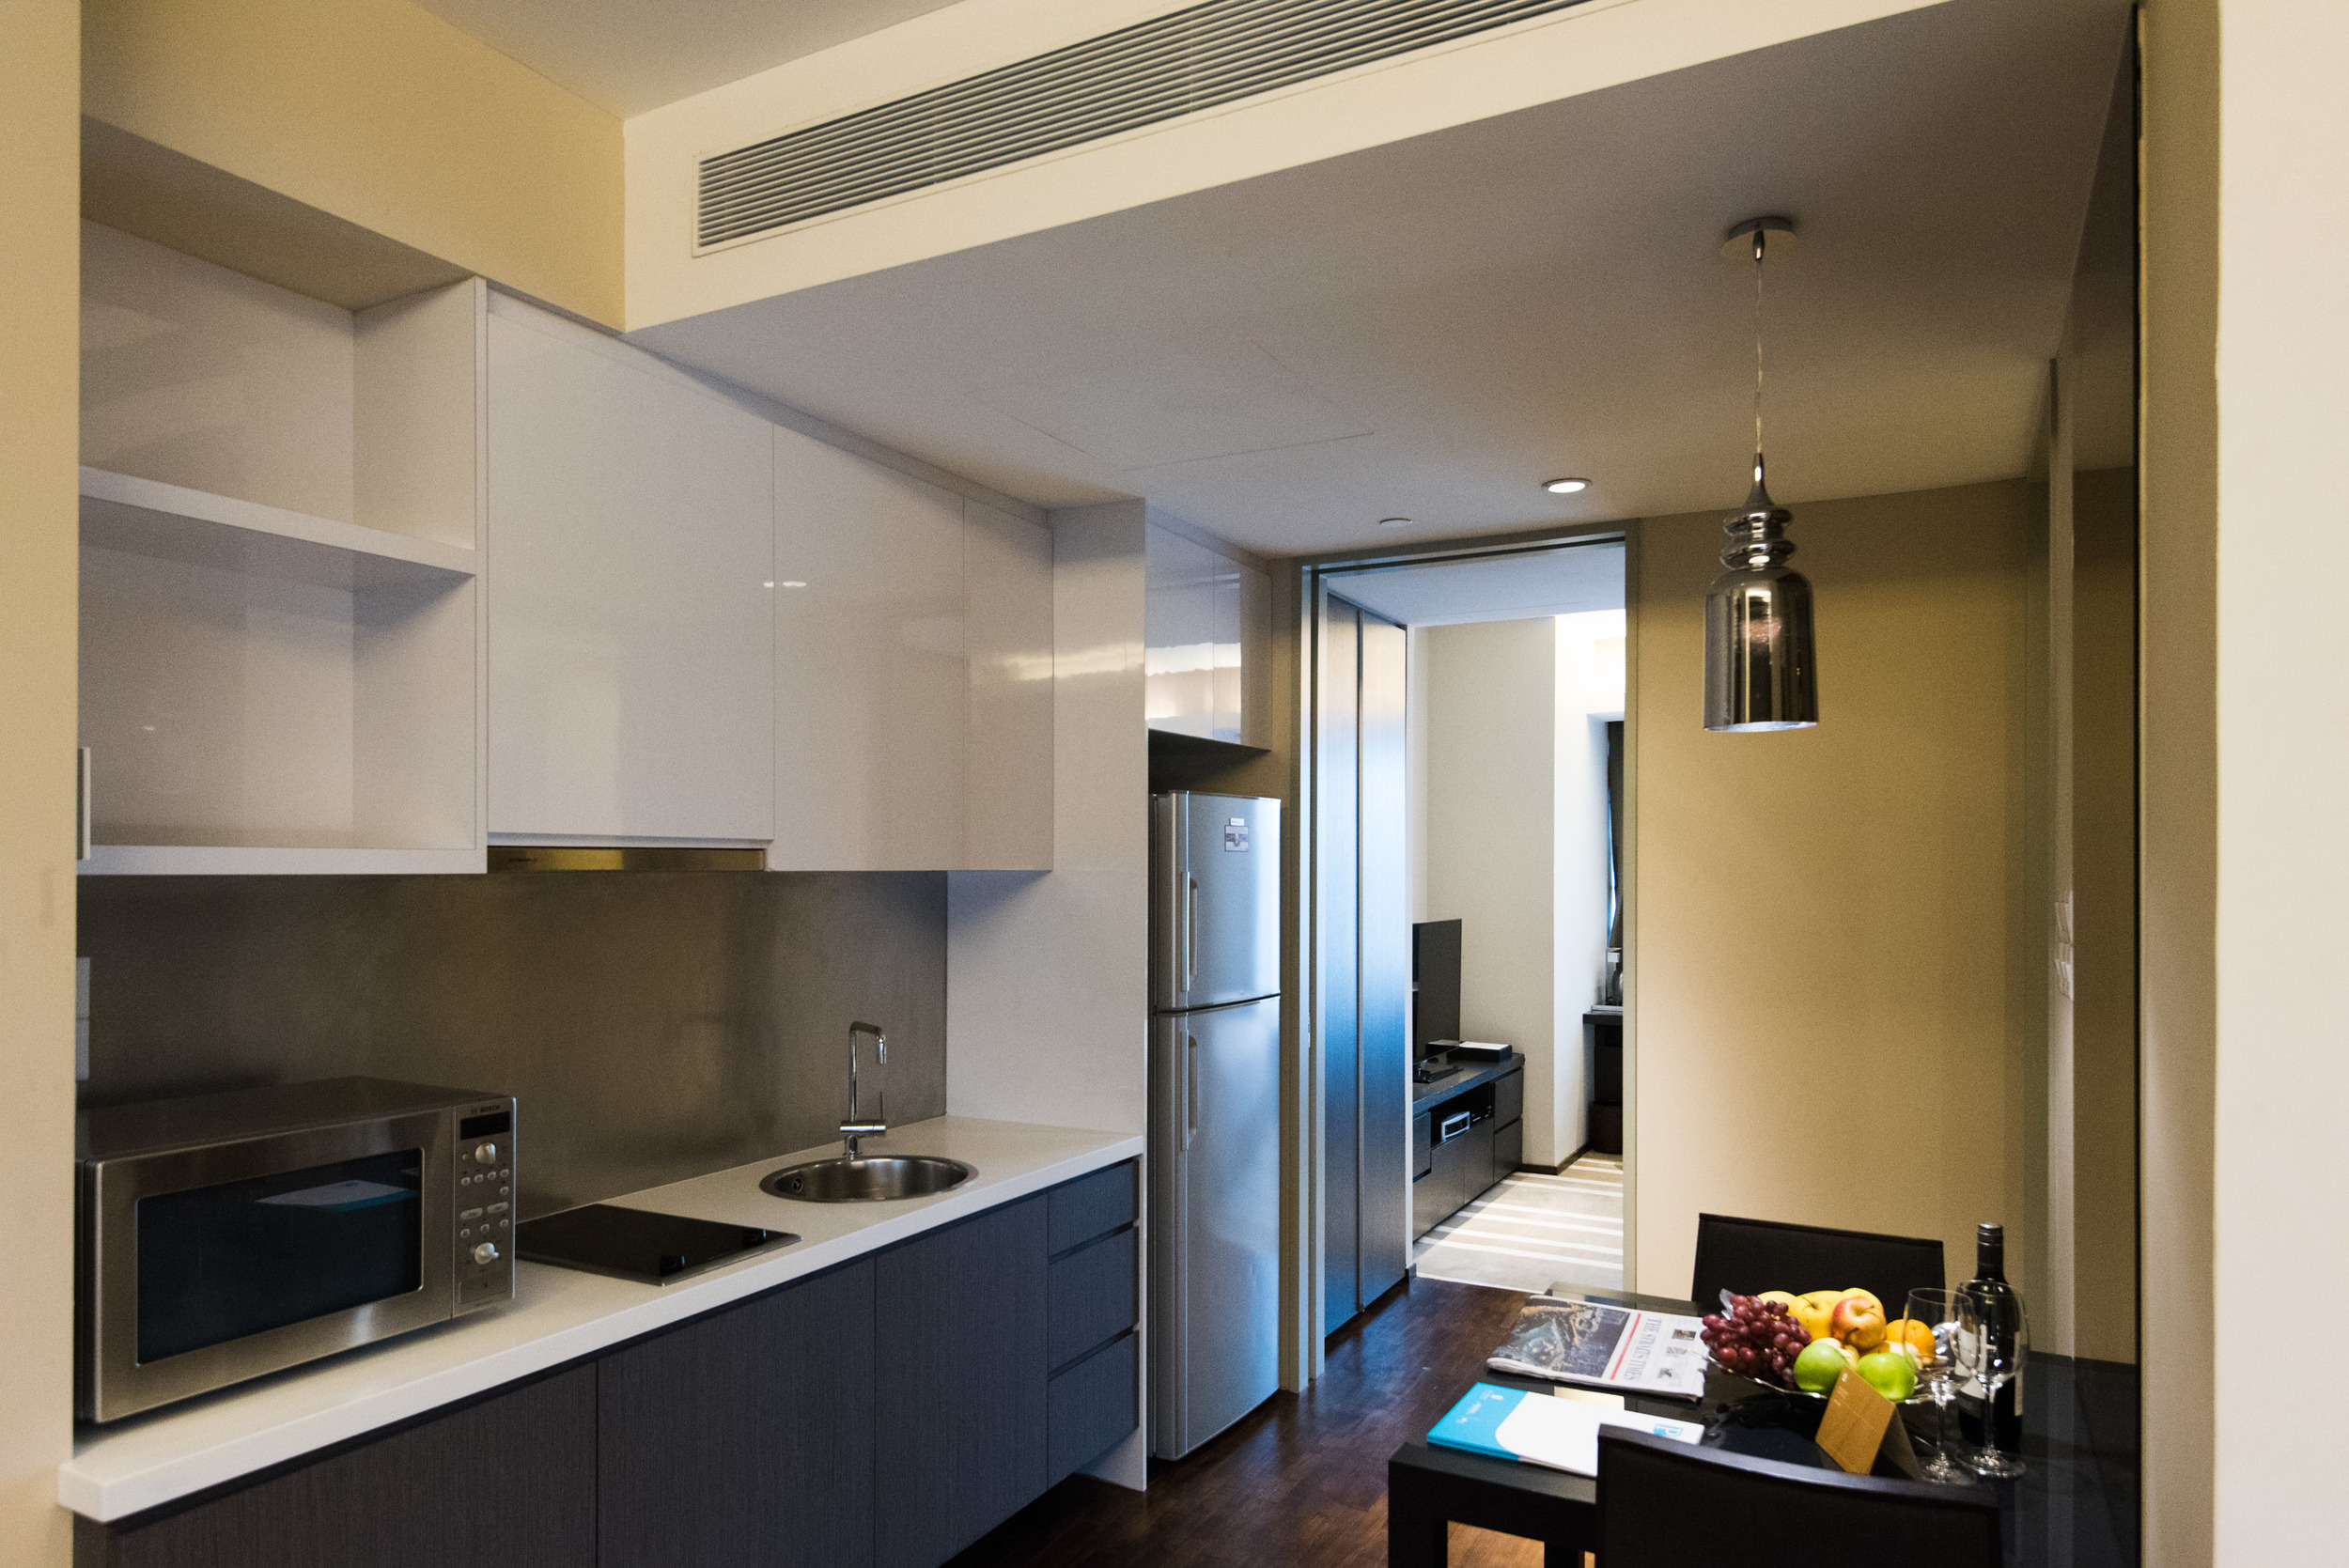 Kitchen and Dining Area of the One Bedroom Deluxe Suite